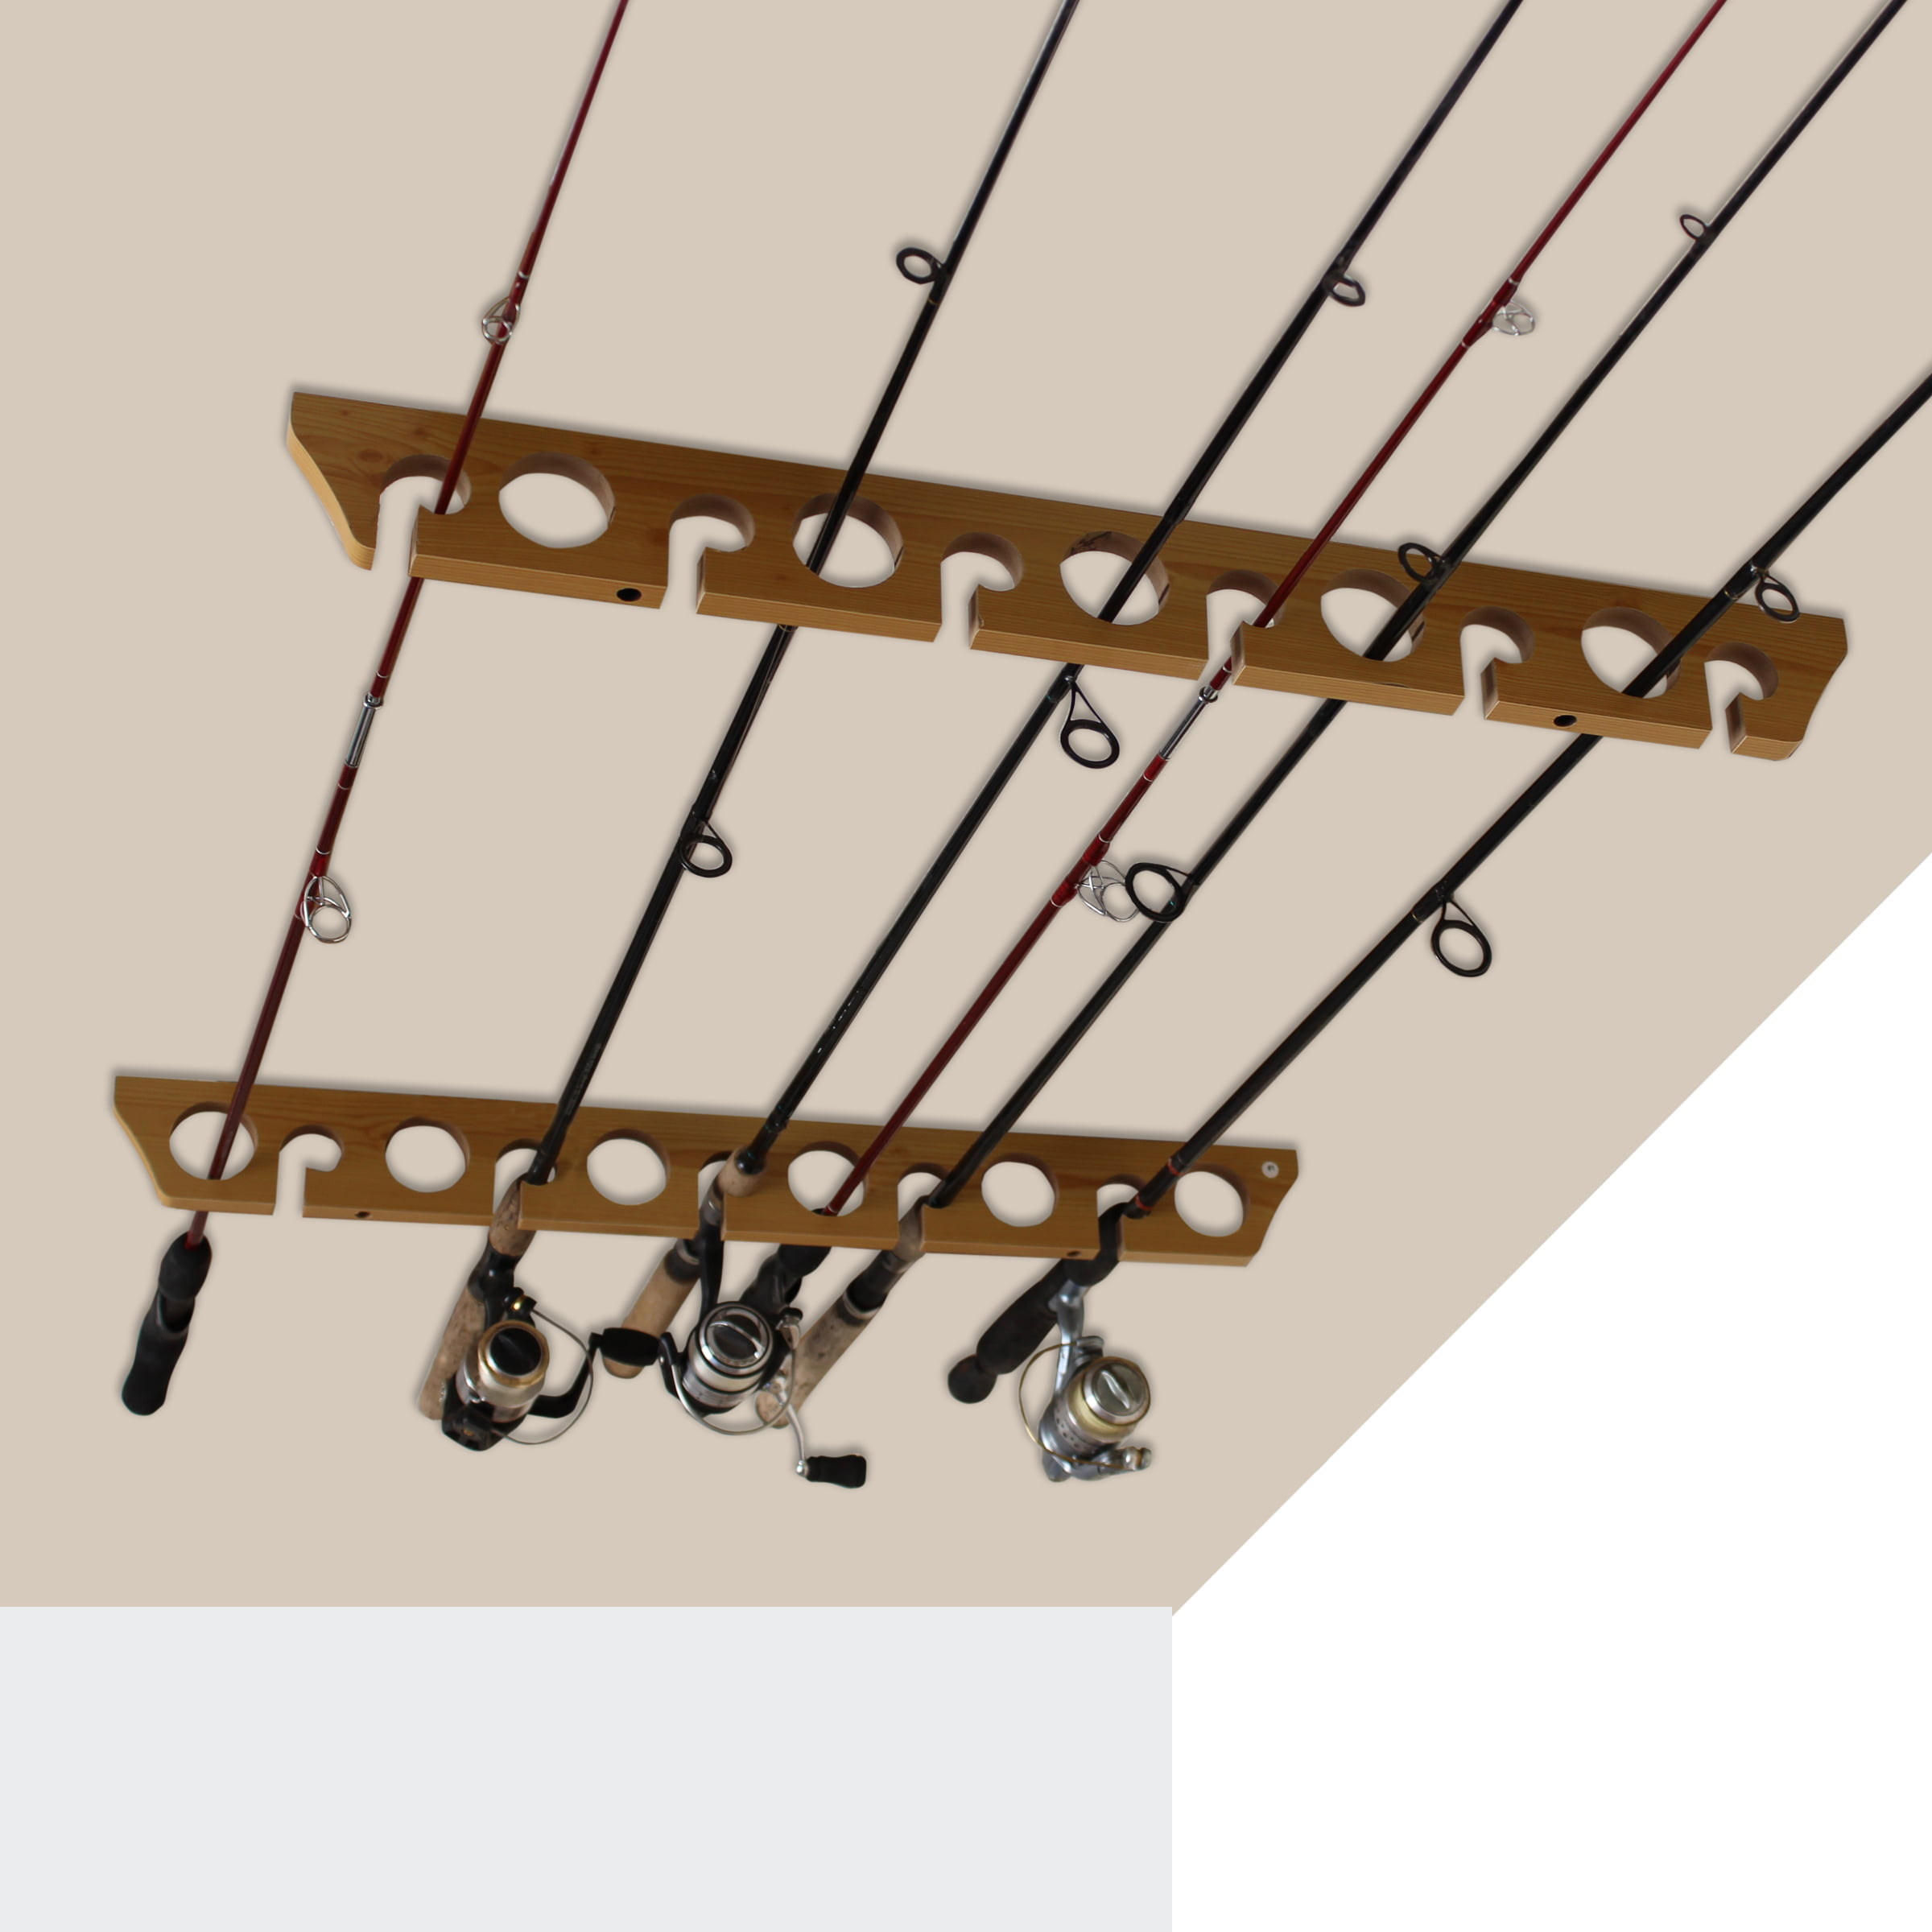 Hang on Walls Old Cedar Outfitters 3-in-1 Hanging Fishing Rod Storage Rack